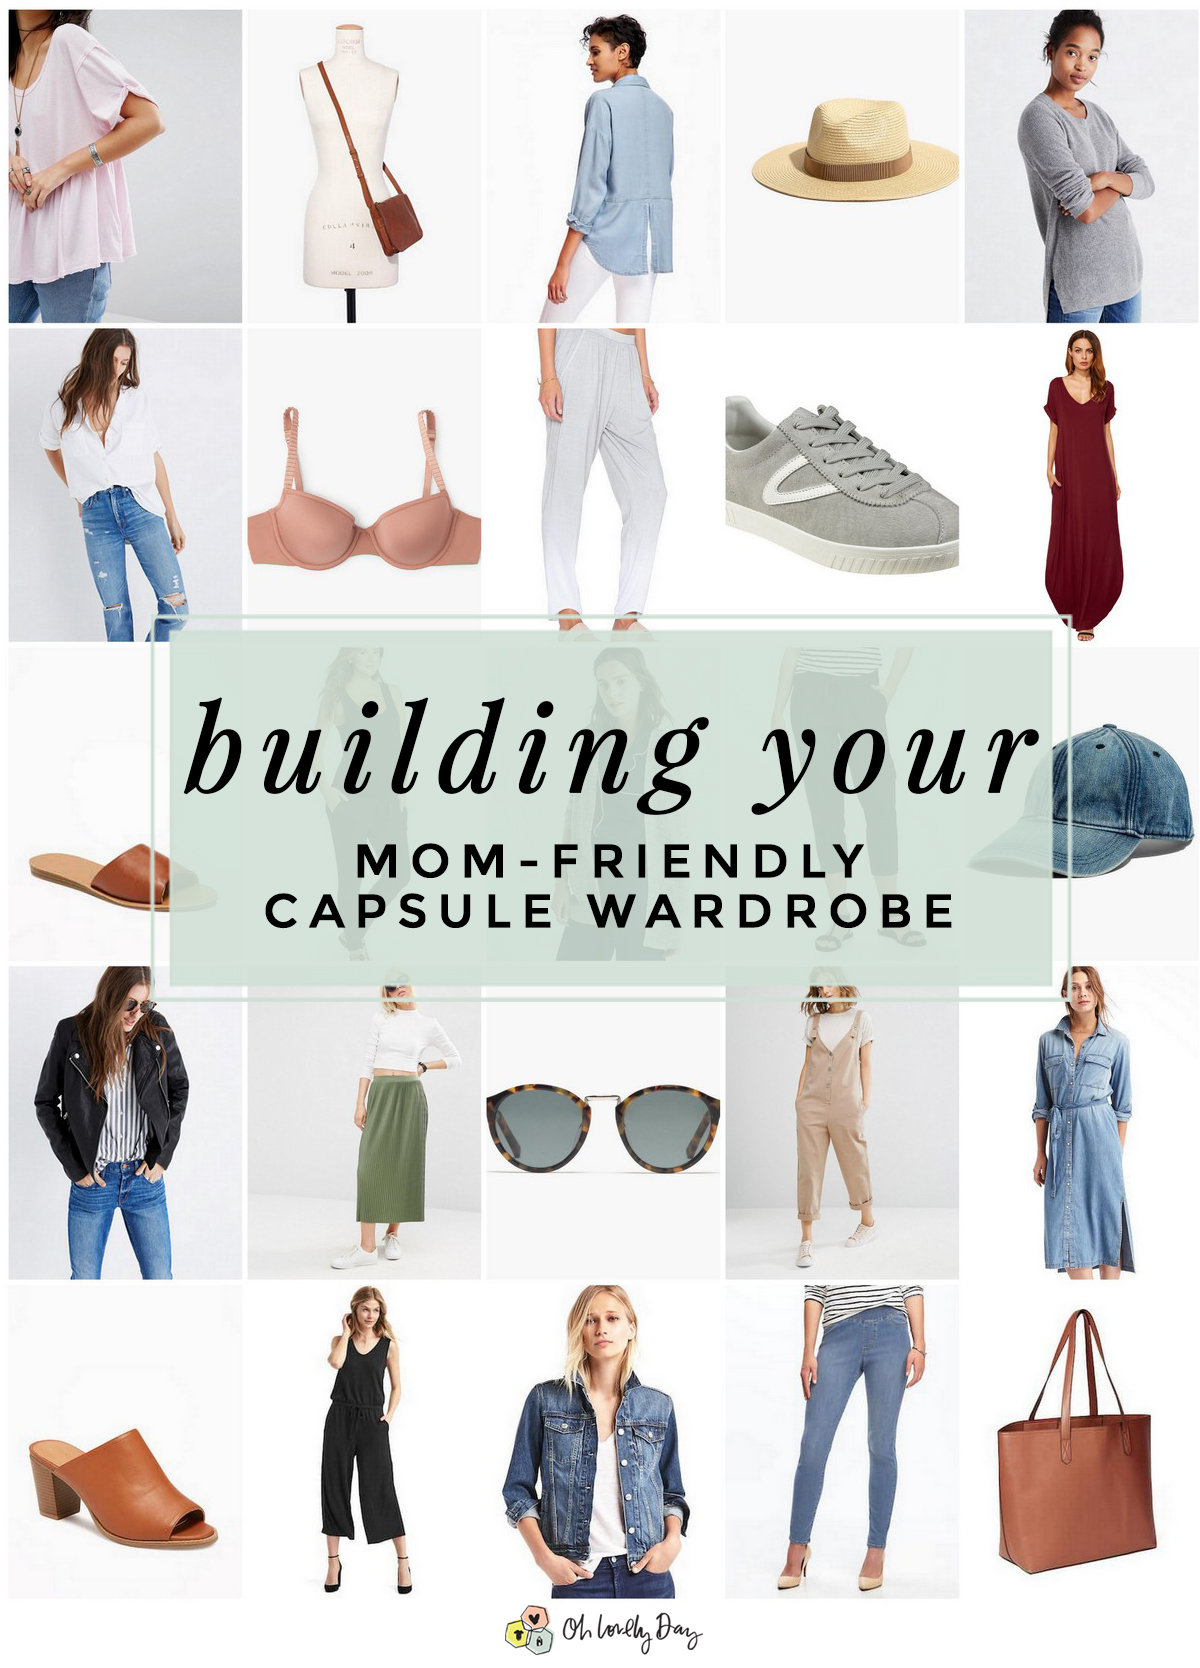 d3a0be92976c Creating a Mom-Friendly Capsule Wardrobe - Oh Lovely Day